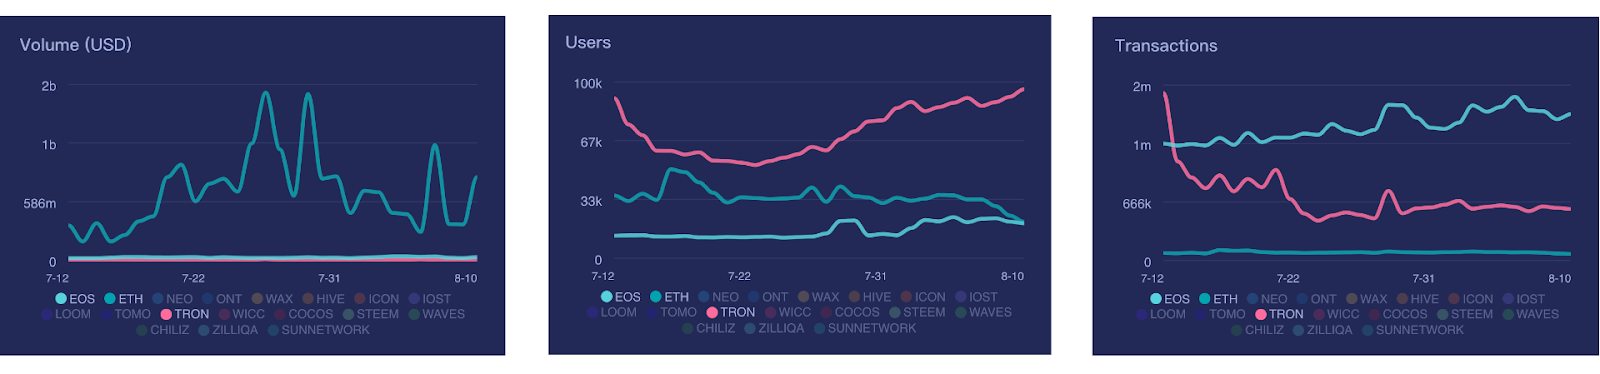 Comparison of volumes on Ethereum, TRON, and EOS by Dapp Review